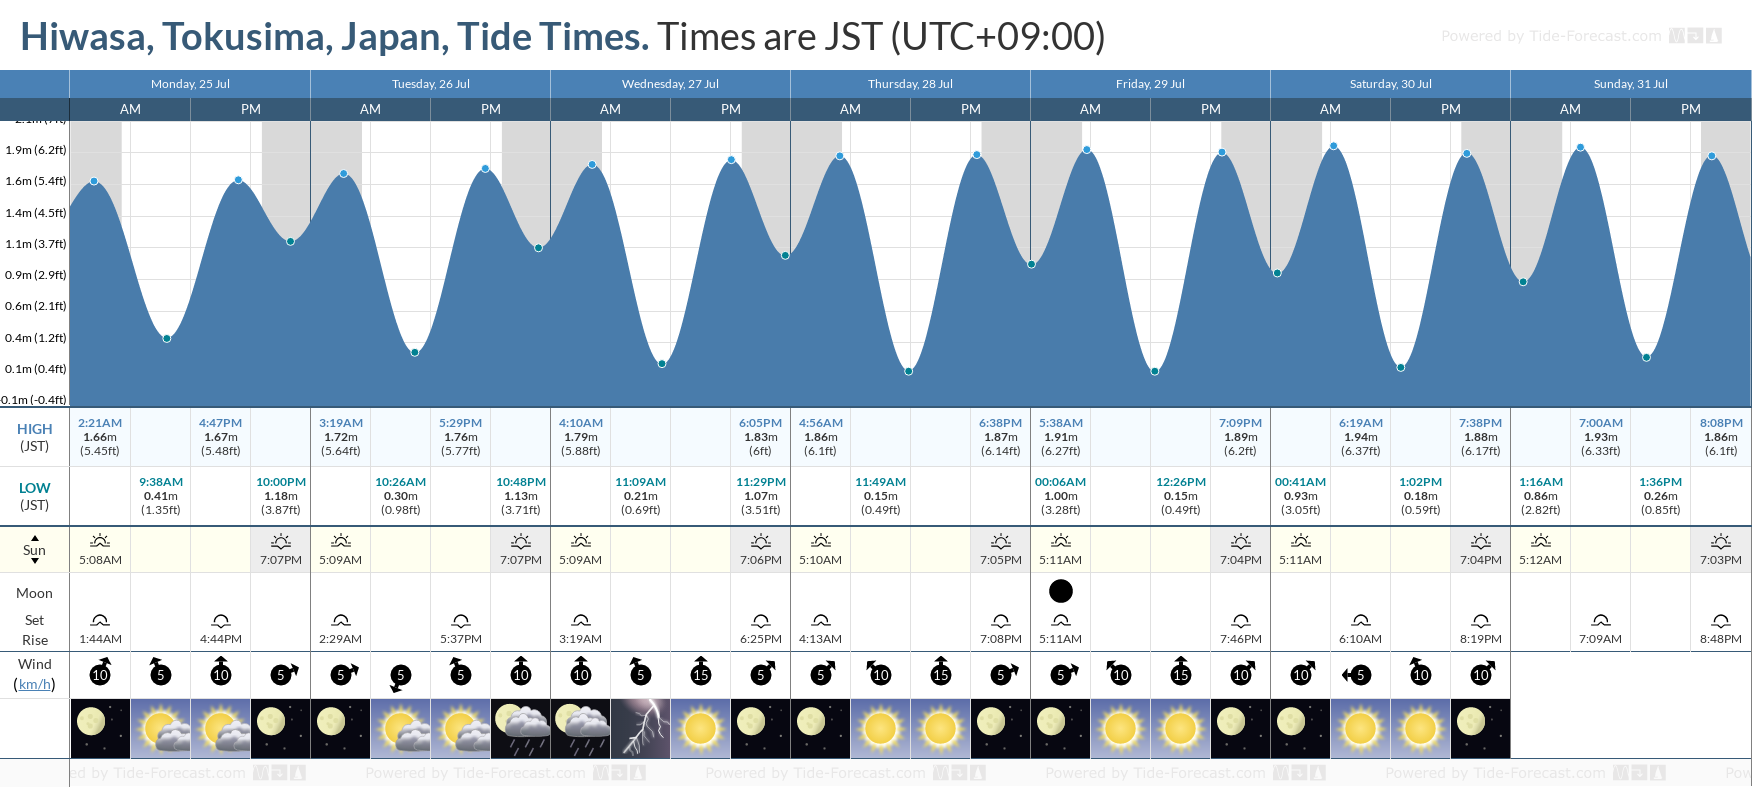 Hiwasa, Tokusima, Japan Tide Chart including high and low tide tide times for the next 7 days